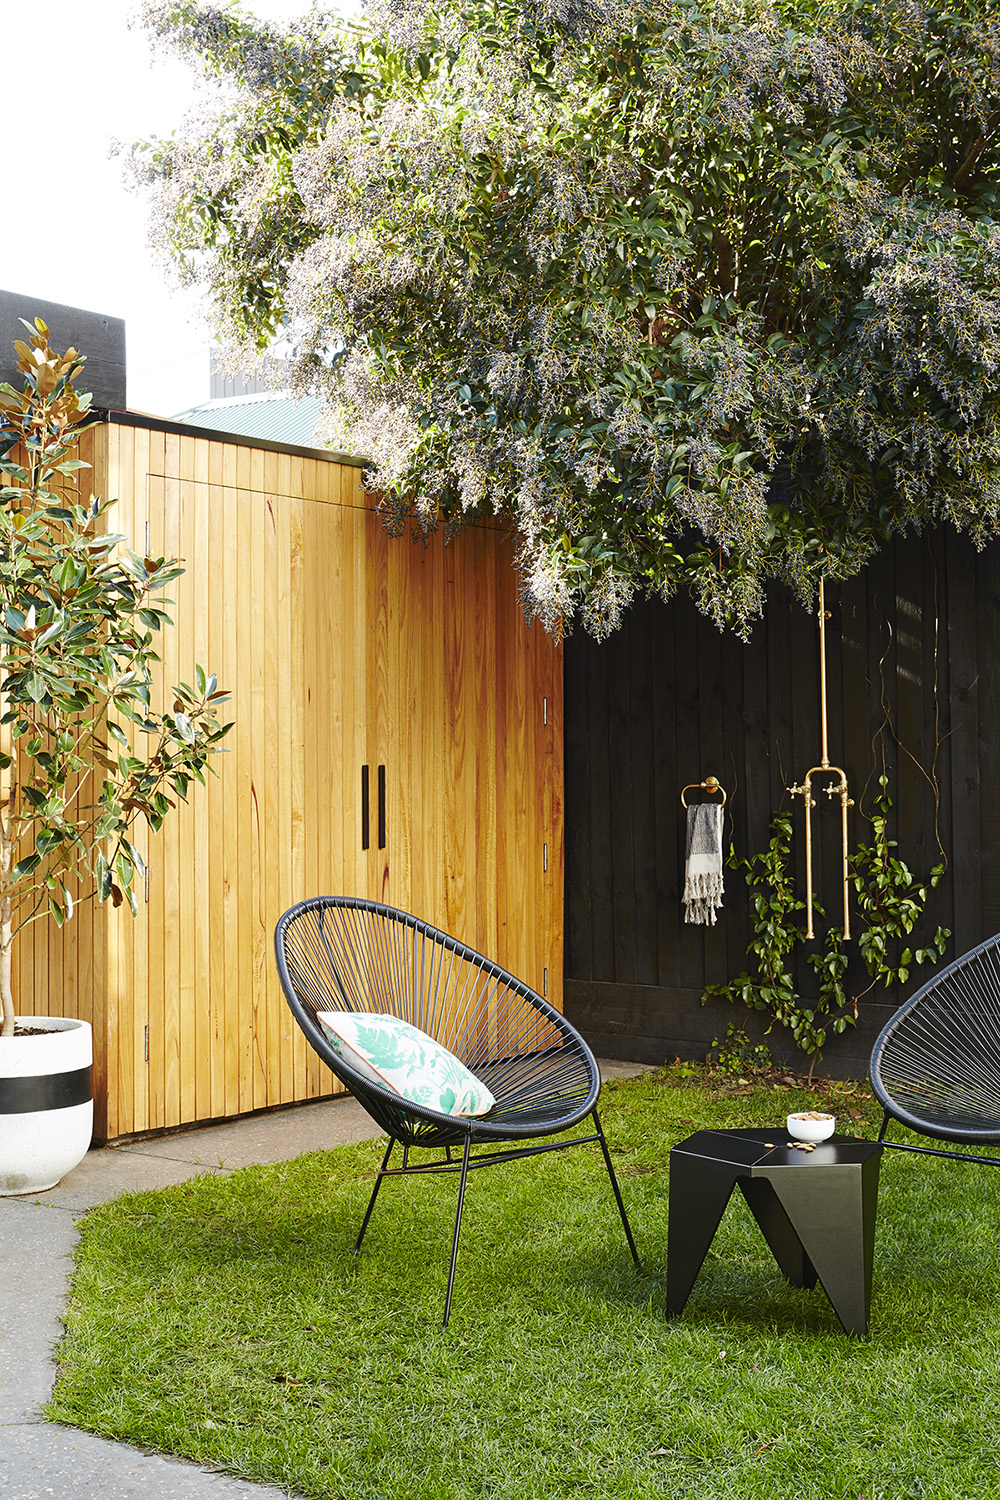 Paola Gredler's compact courtyard (as featured on the cover)  /  Photography Annette O'Brien  /  Styling Alana Langan